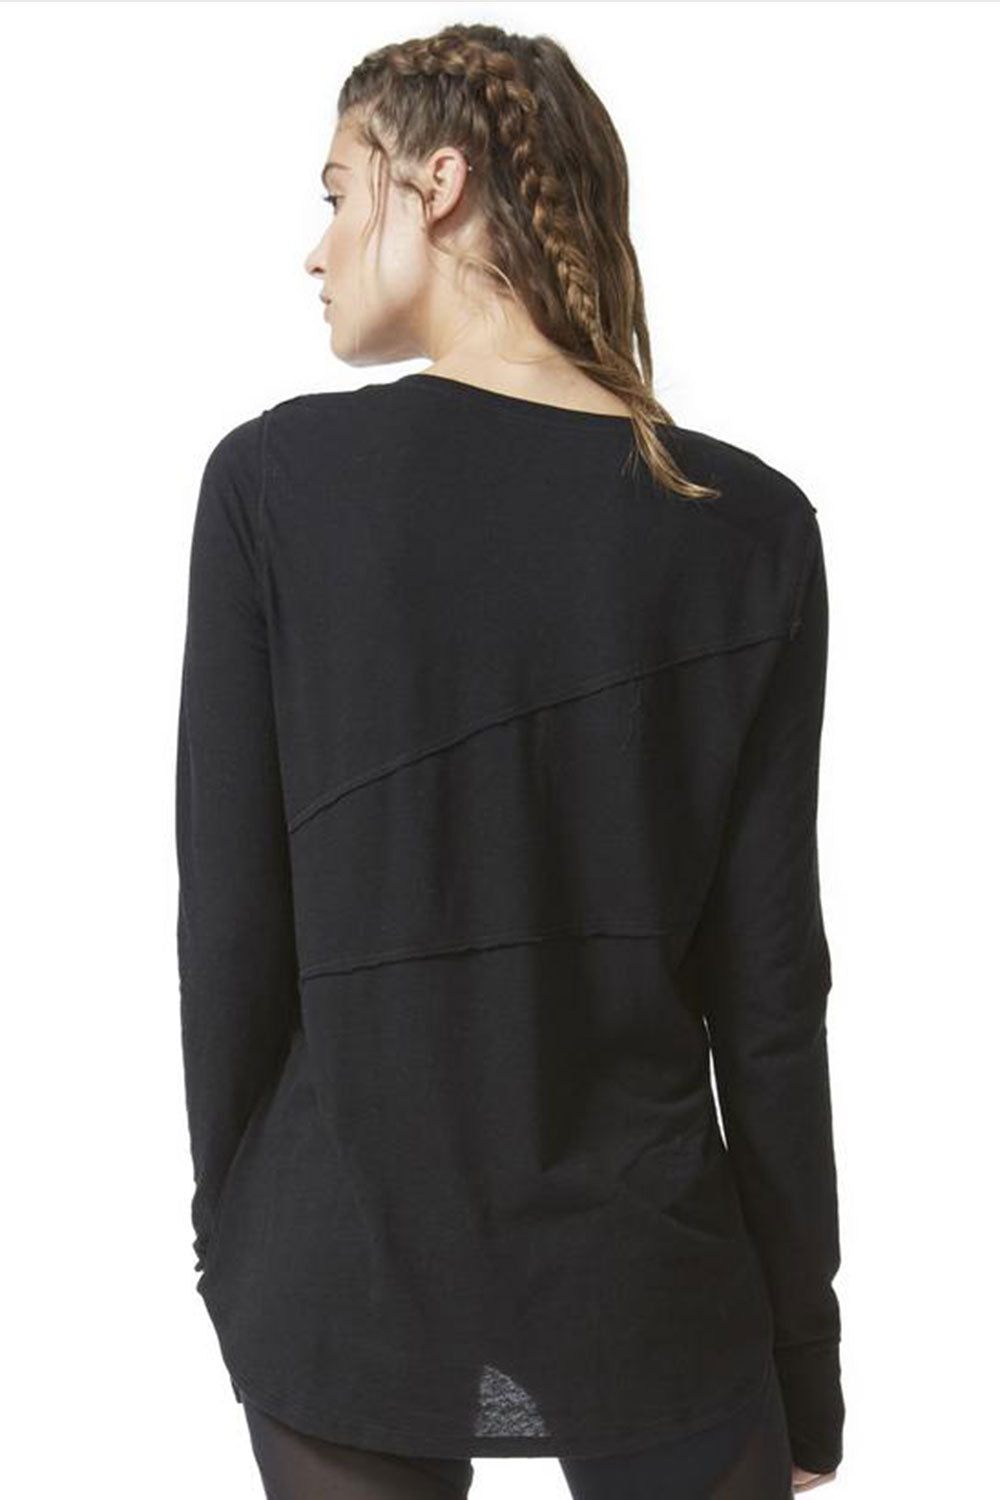 Pacific Seam Long Sleeve V Neck Top - Black